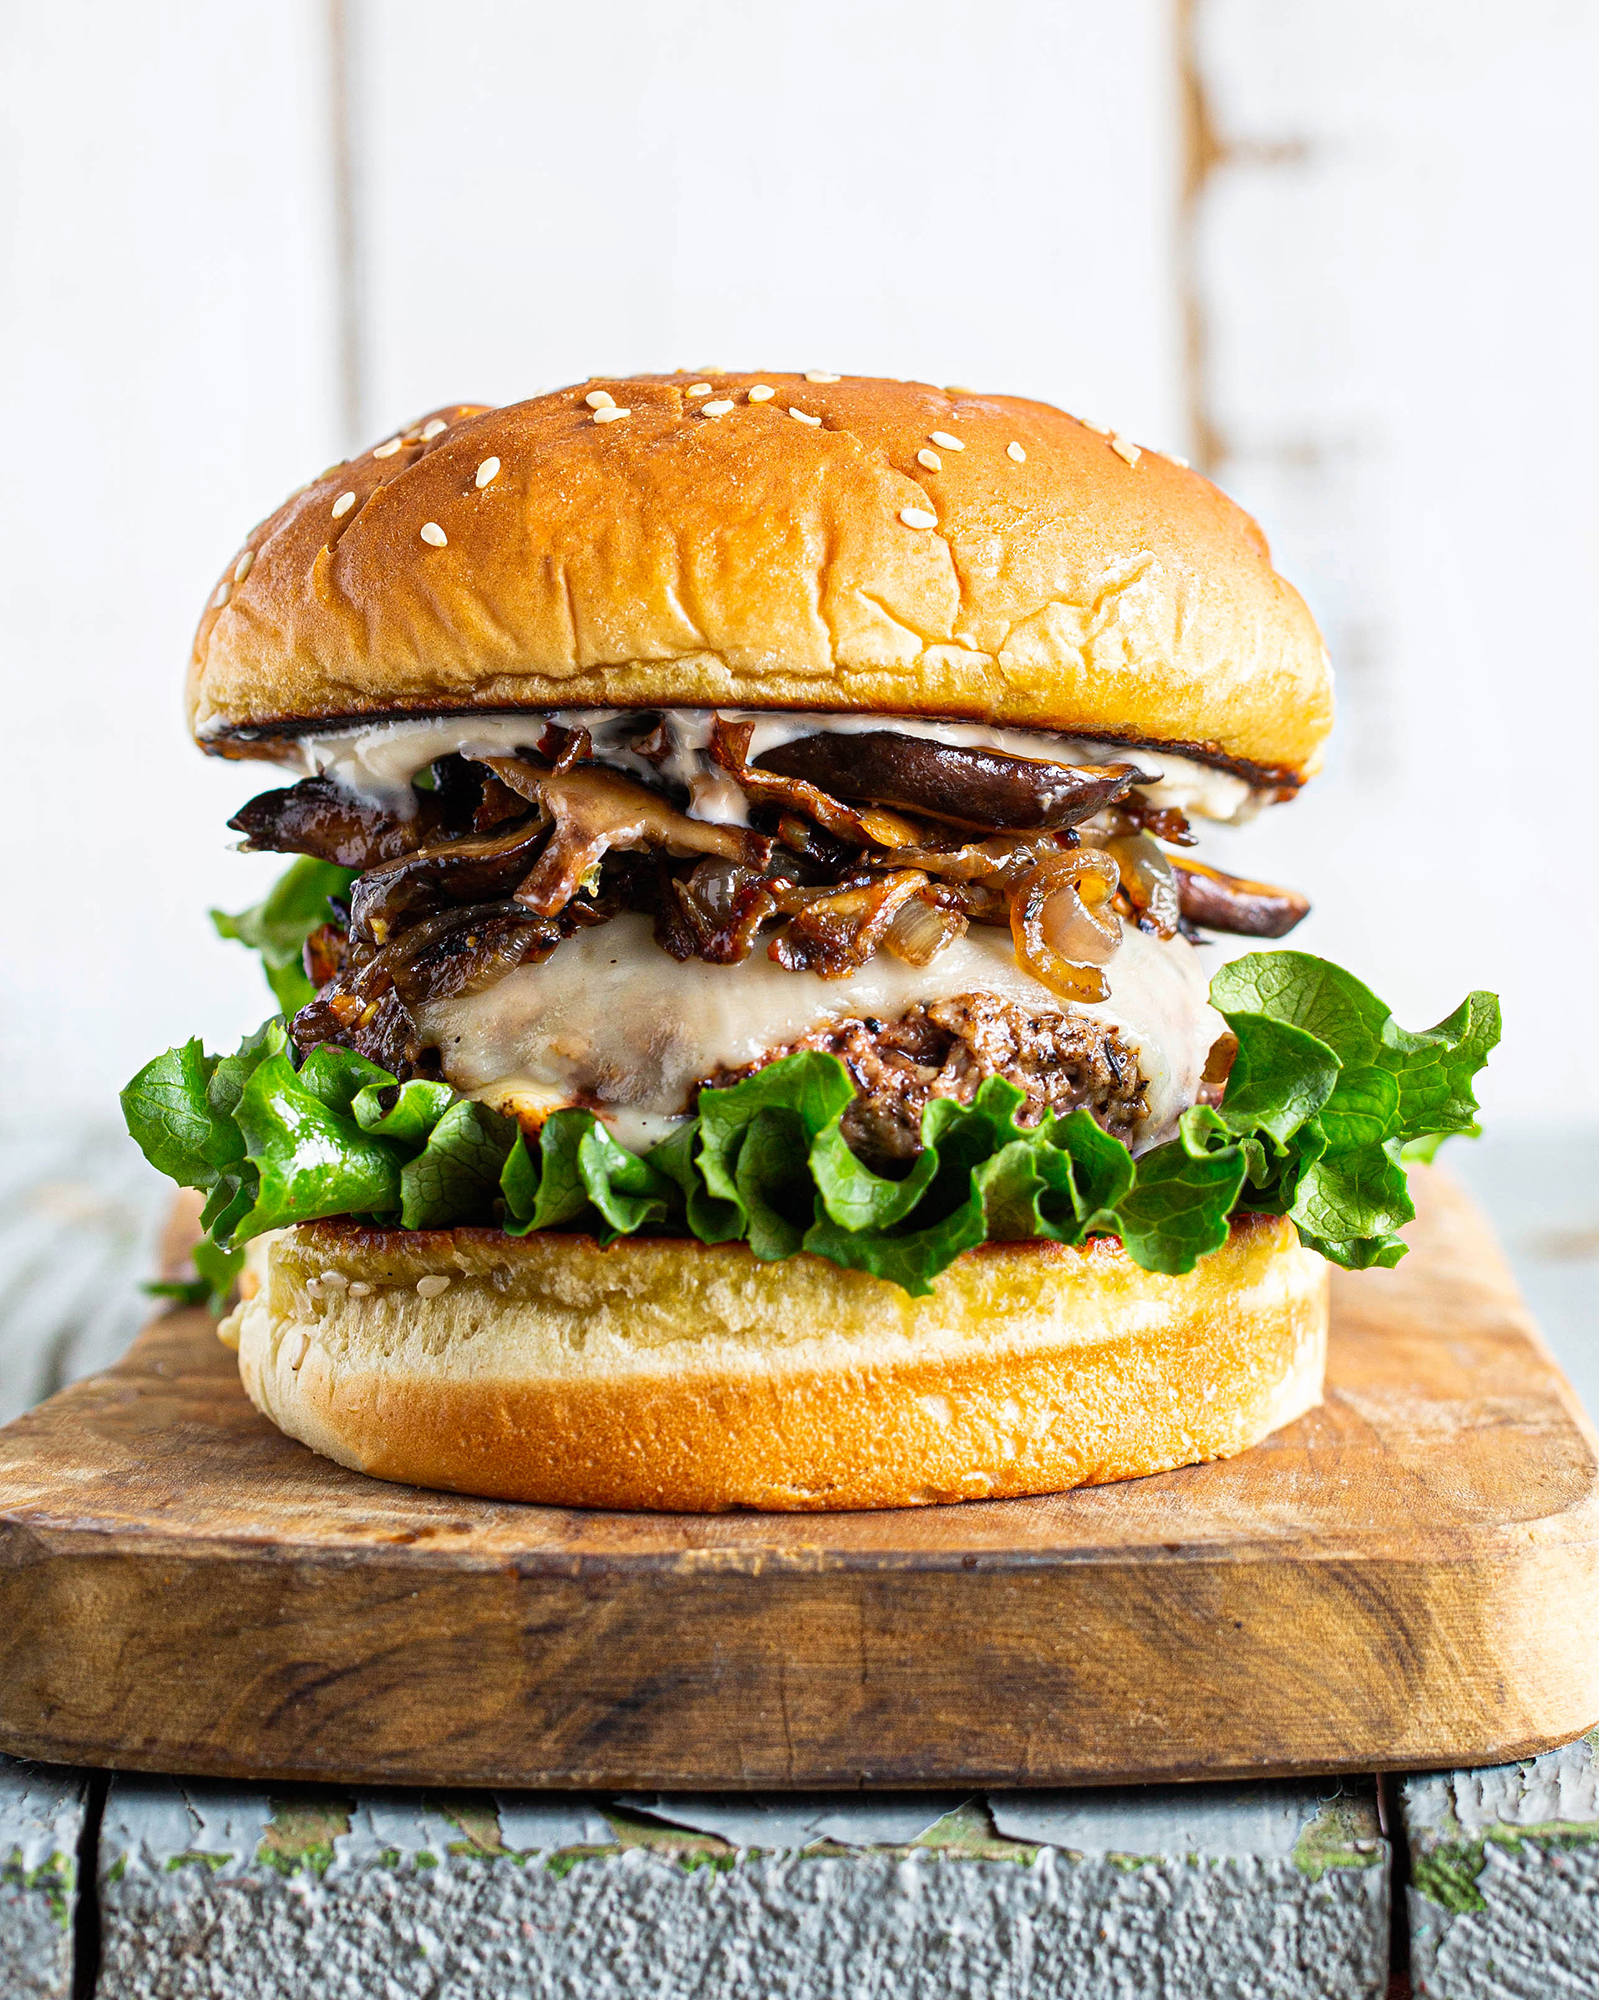 Wild Mushroom Impossible Cheeseburger With Roasted Garlic Aioli Eitan Bernath